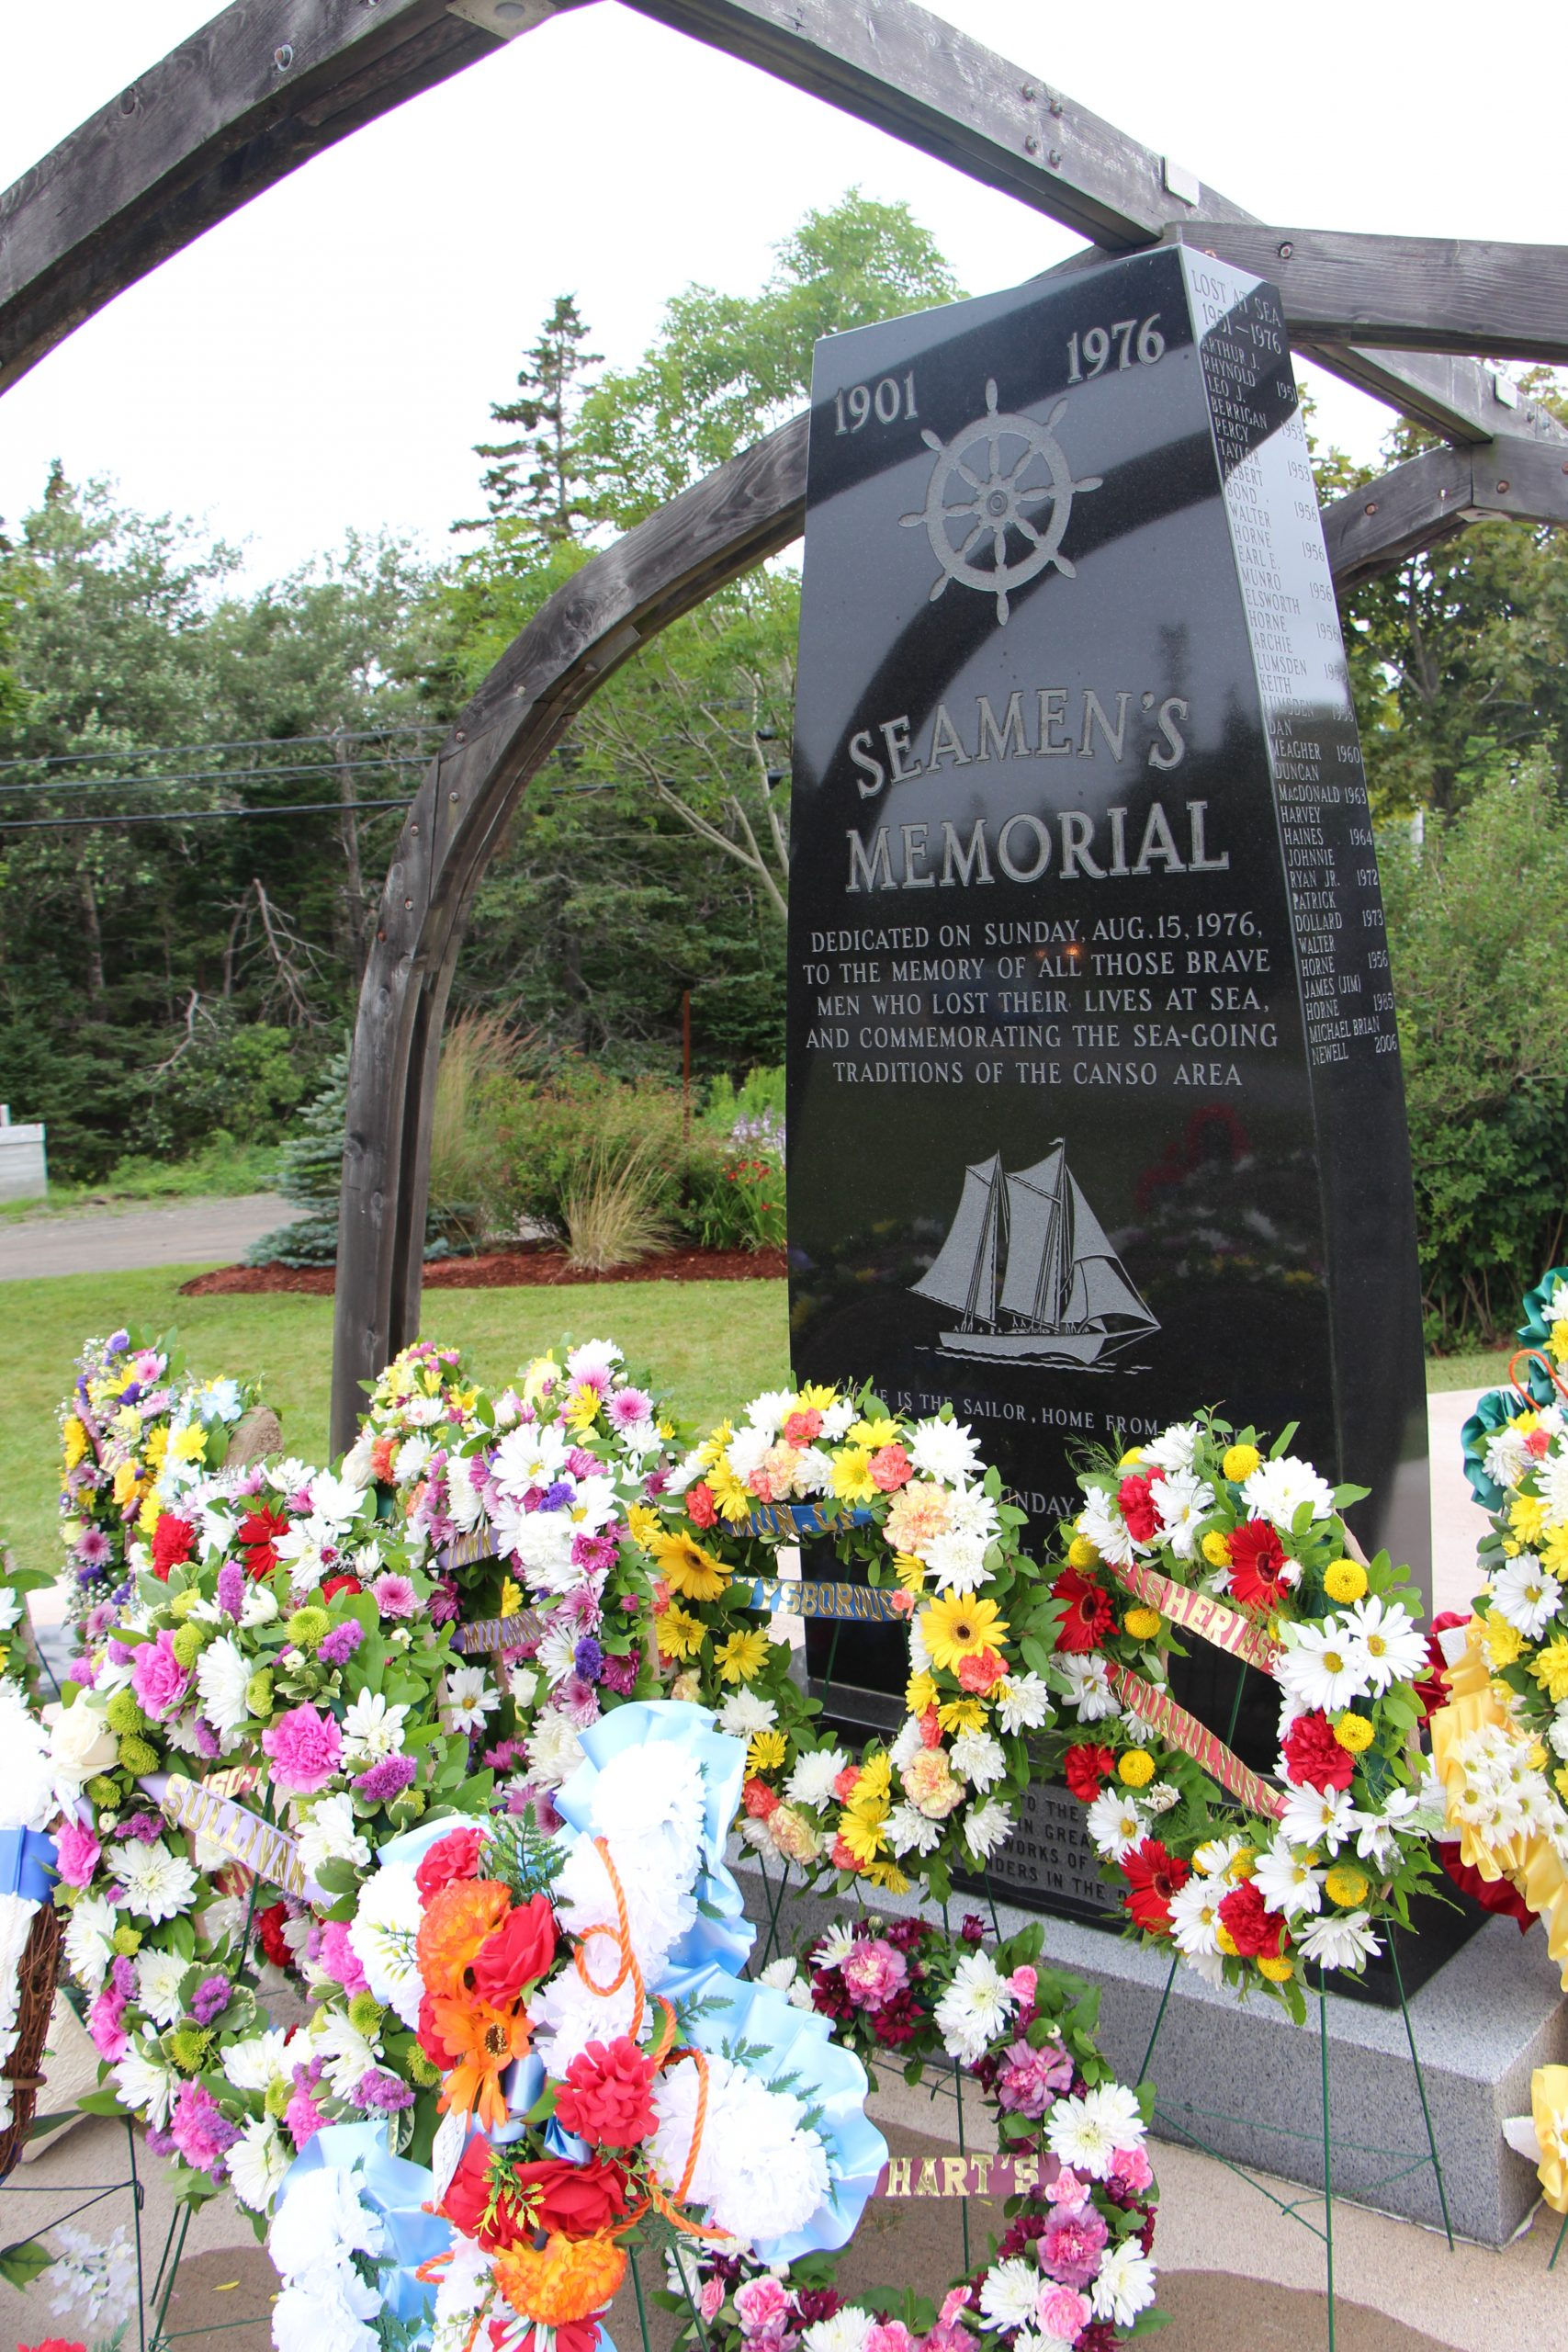 Seamans Memorial set for Canso Sunday